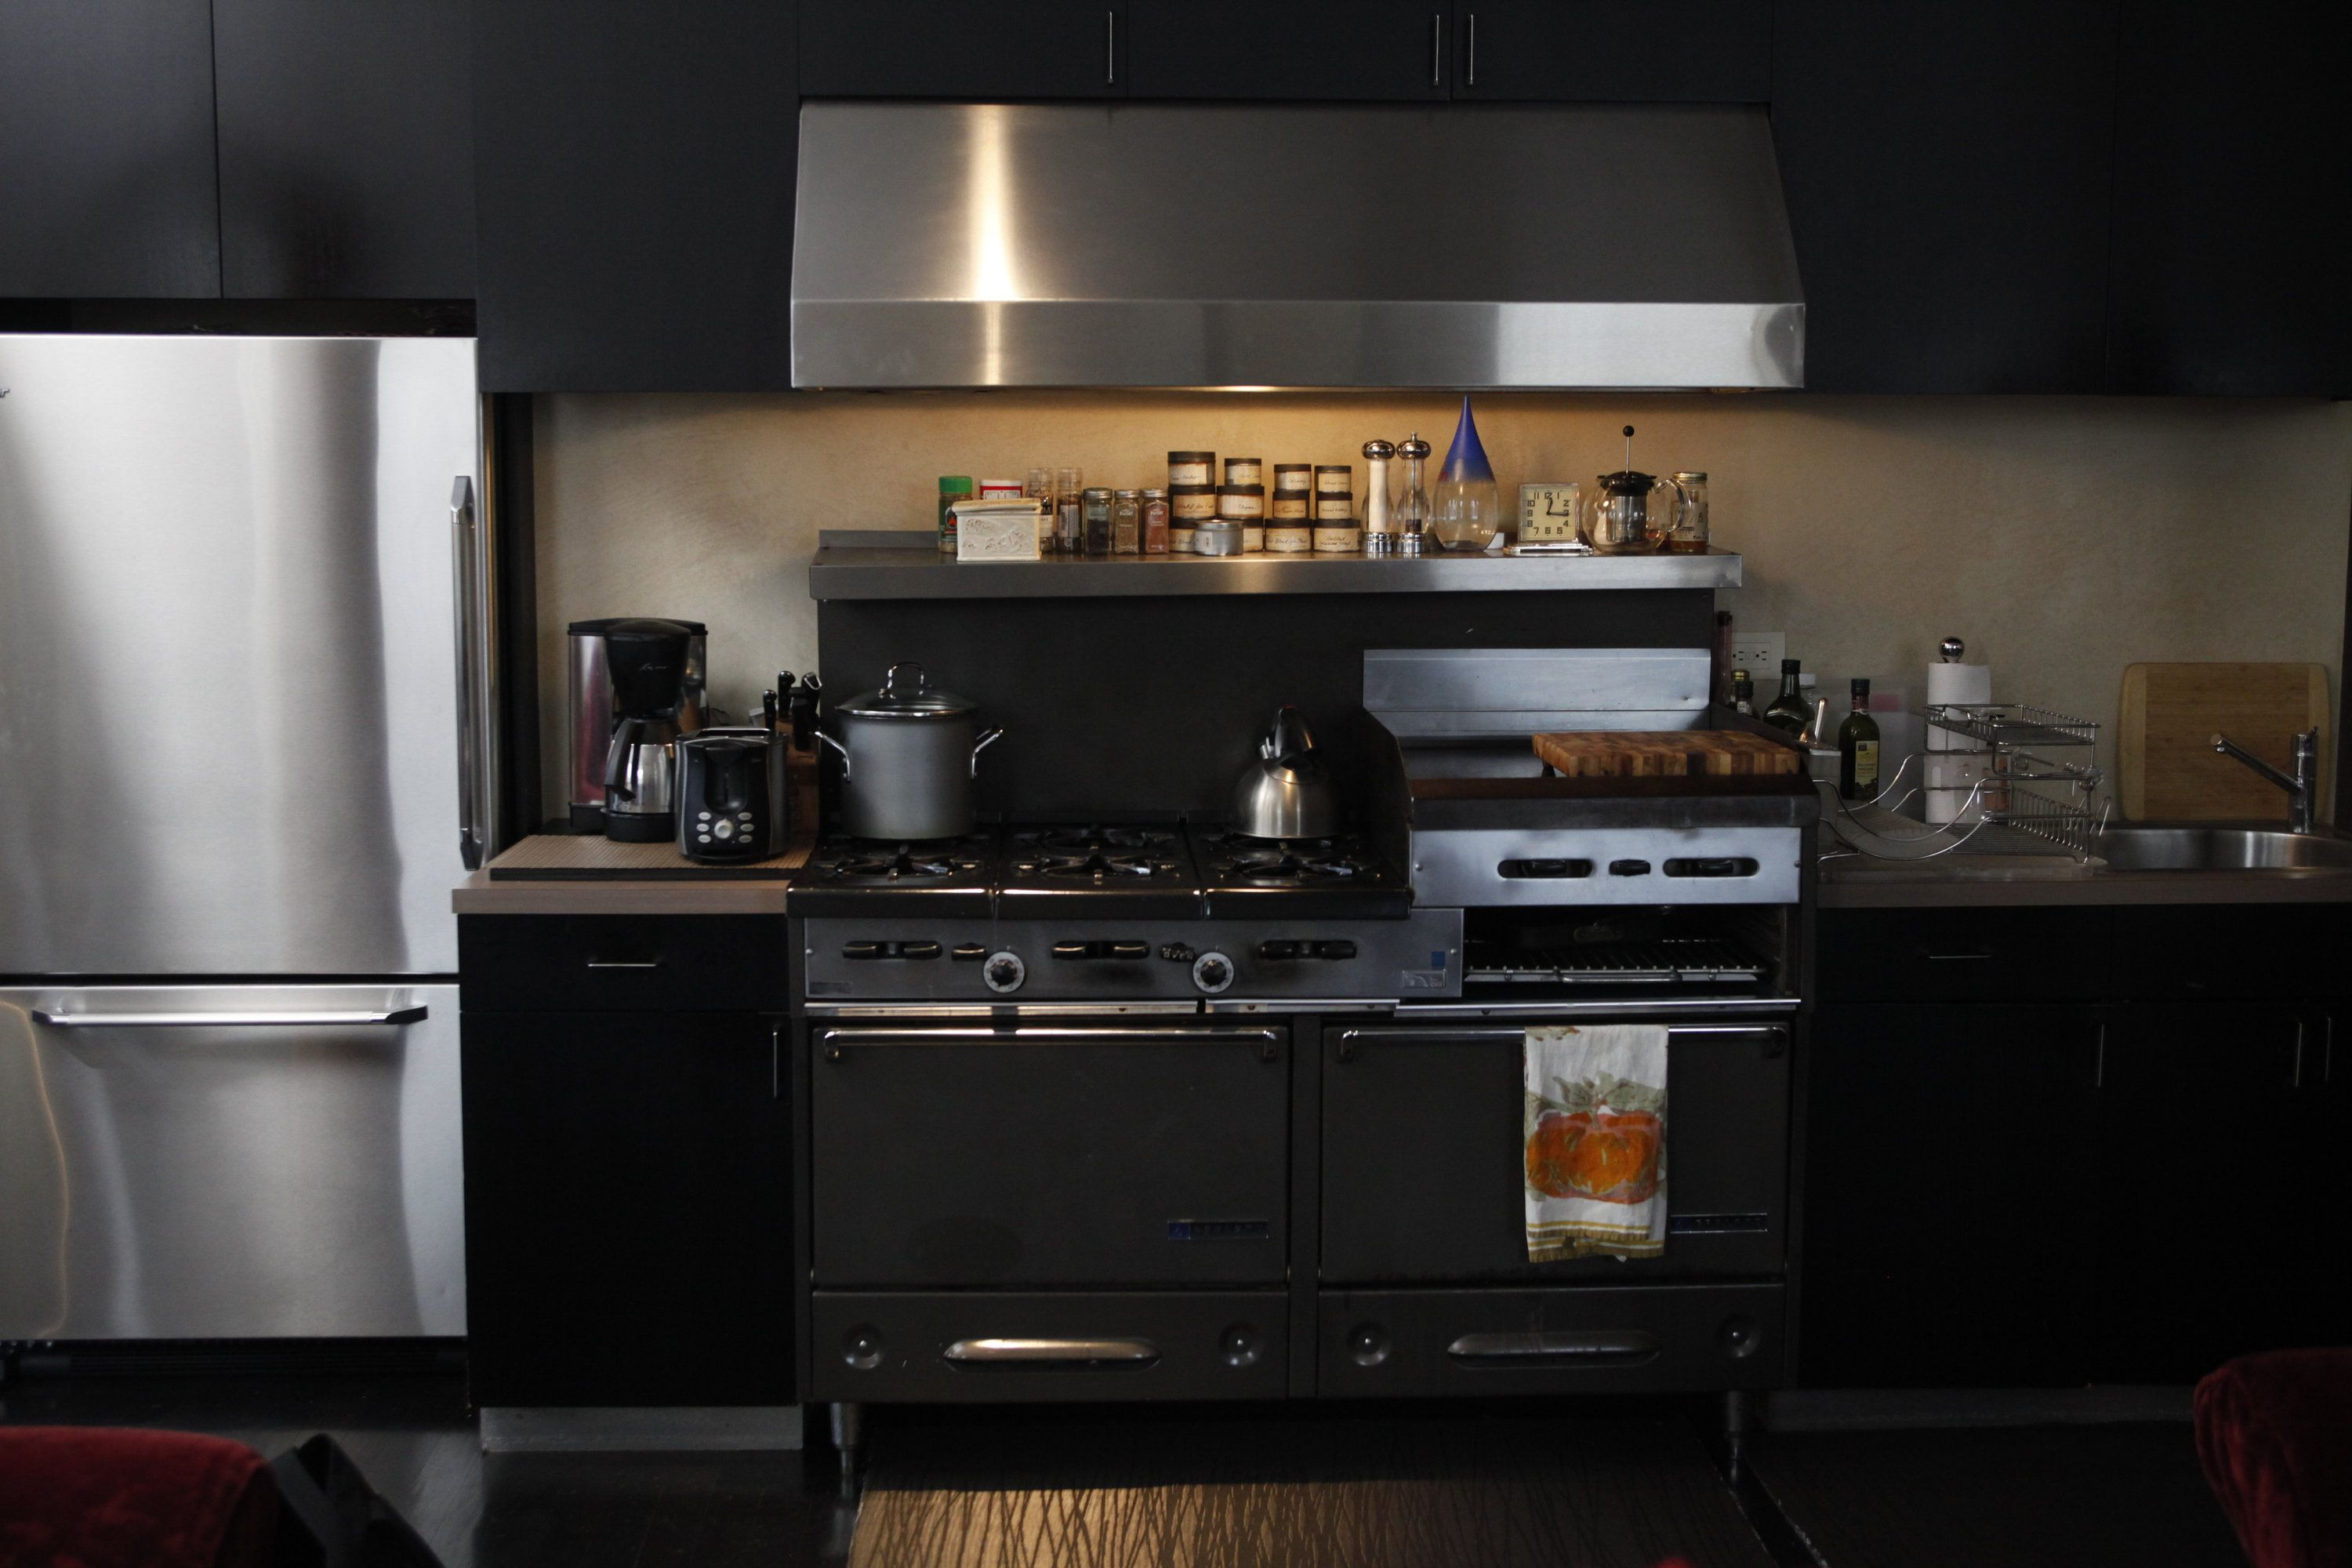 Dark and steely! @GloMSN http://glo.msn.com/living/hot-guys-in-hot-spaces-million-dollar-listings-nyc-7942.gallery